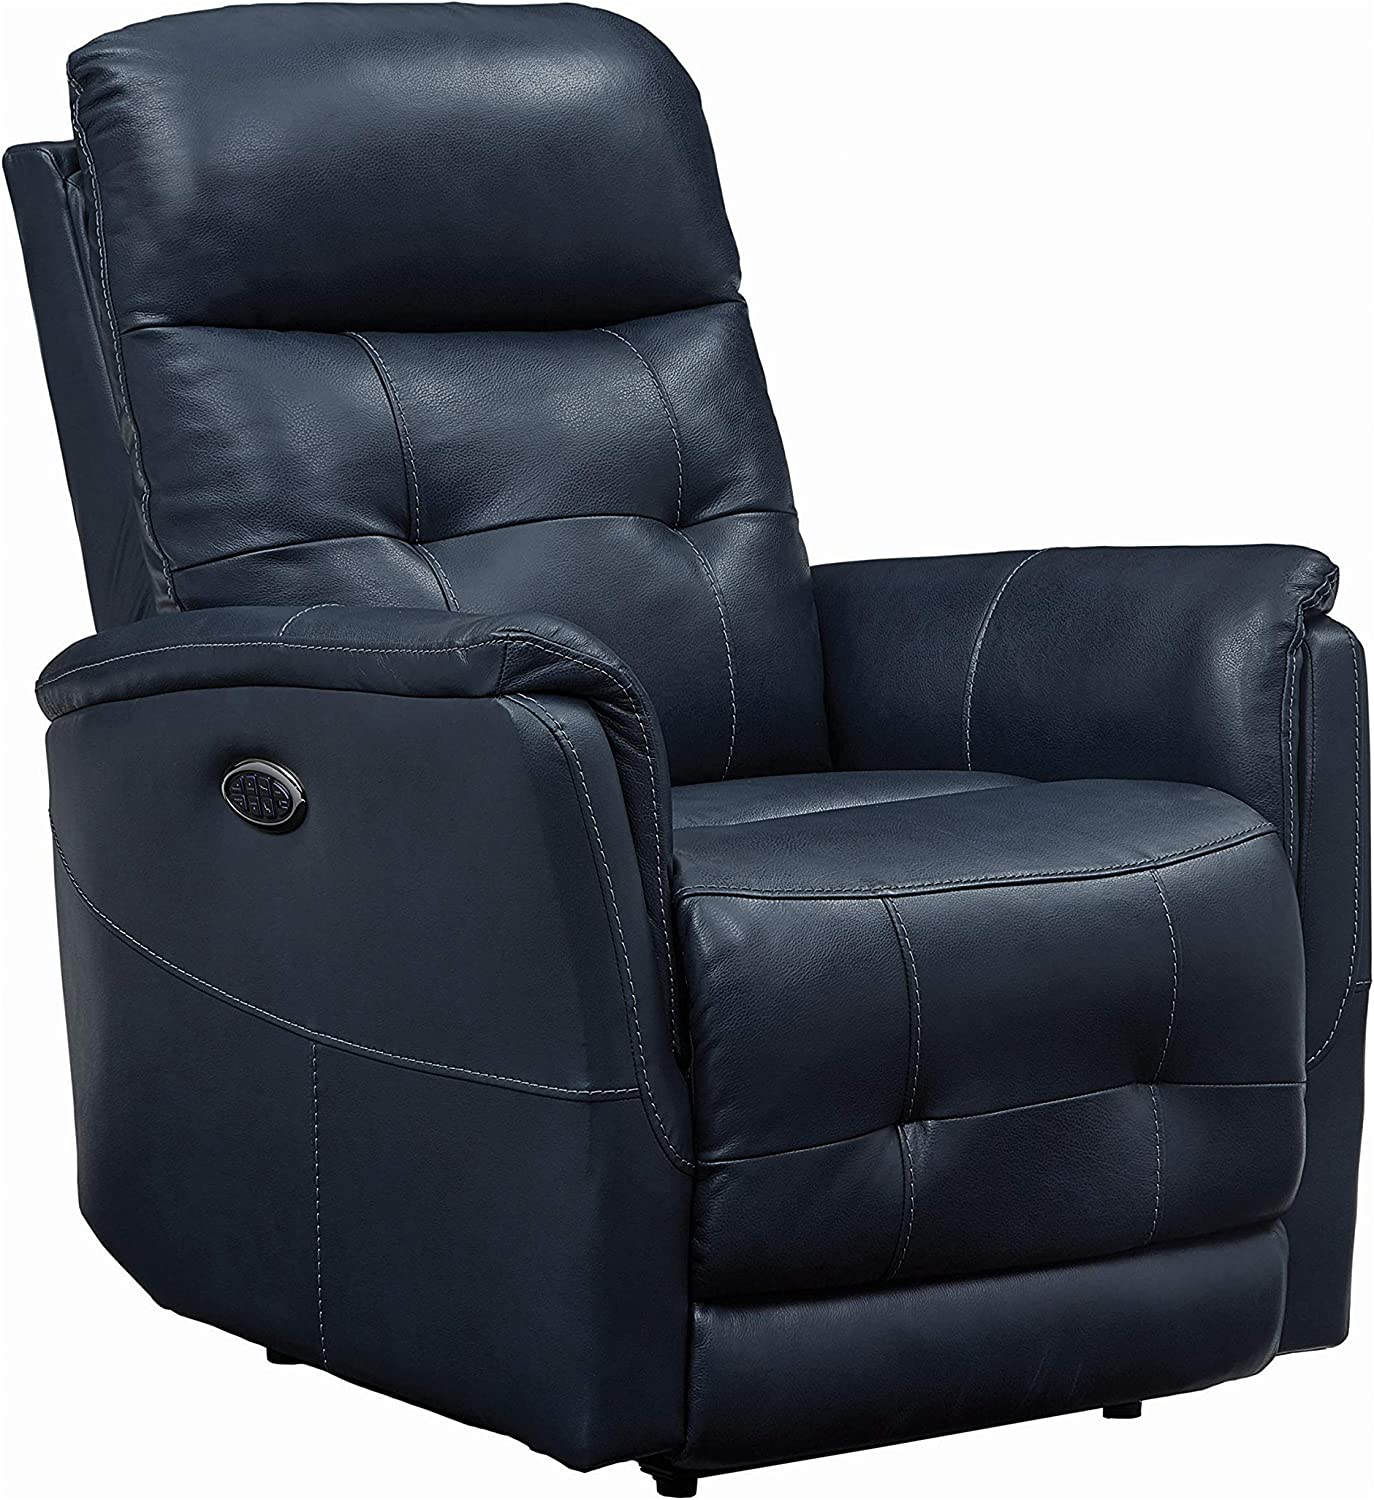 Coaster Home Furnishings Upholstered Cushion Back Seat, Headrest and Power Lumbar Blue Recliner